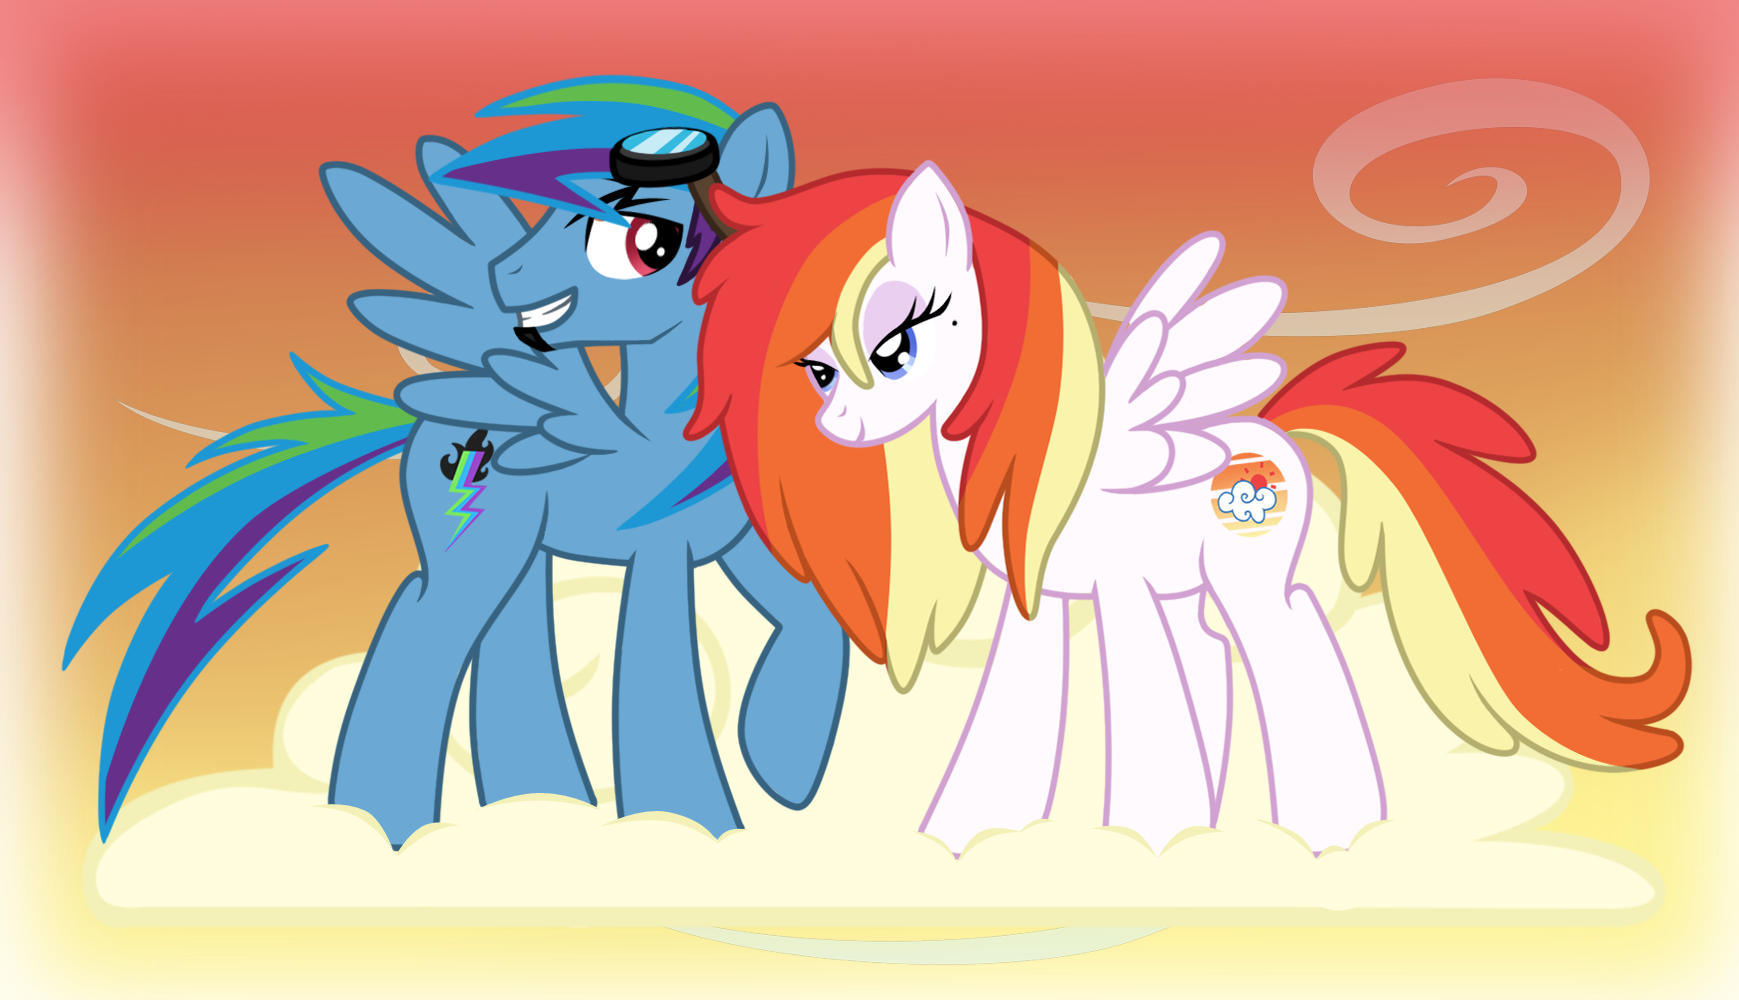 Rainbow Dash S Parents When We Were Younger By Lugiaangel On Deviantart The story and parents of scootaloo????? when we were younger by lugiaangel on